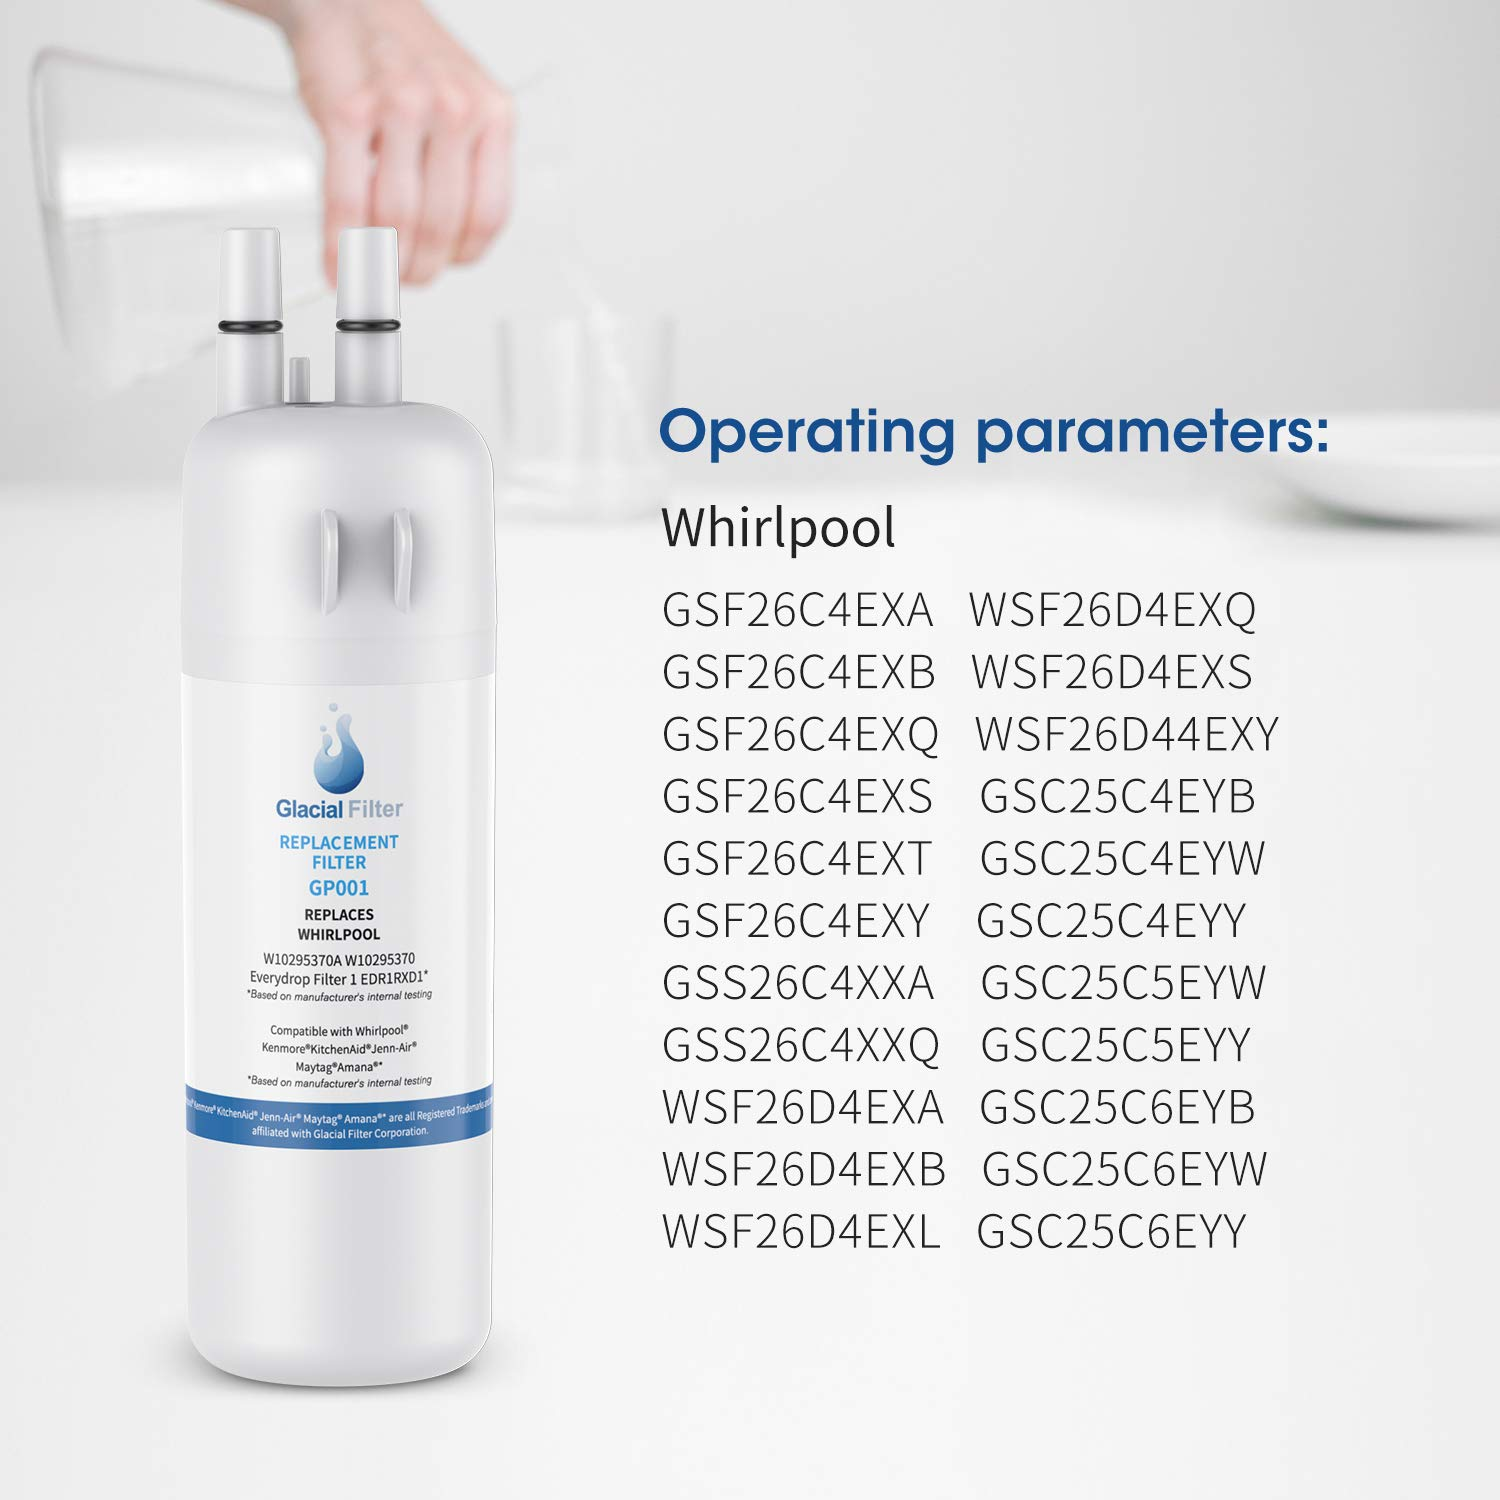 46-9081 3-PACK W10295370A W10295370 Water Filter 1 Compatible with P8RFWB2L P4RFWB ẸDR1RXD1 Pur Filter 1 Kenmore 46-9930